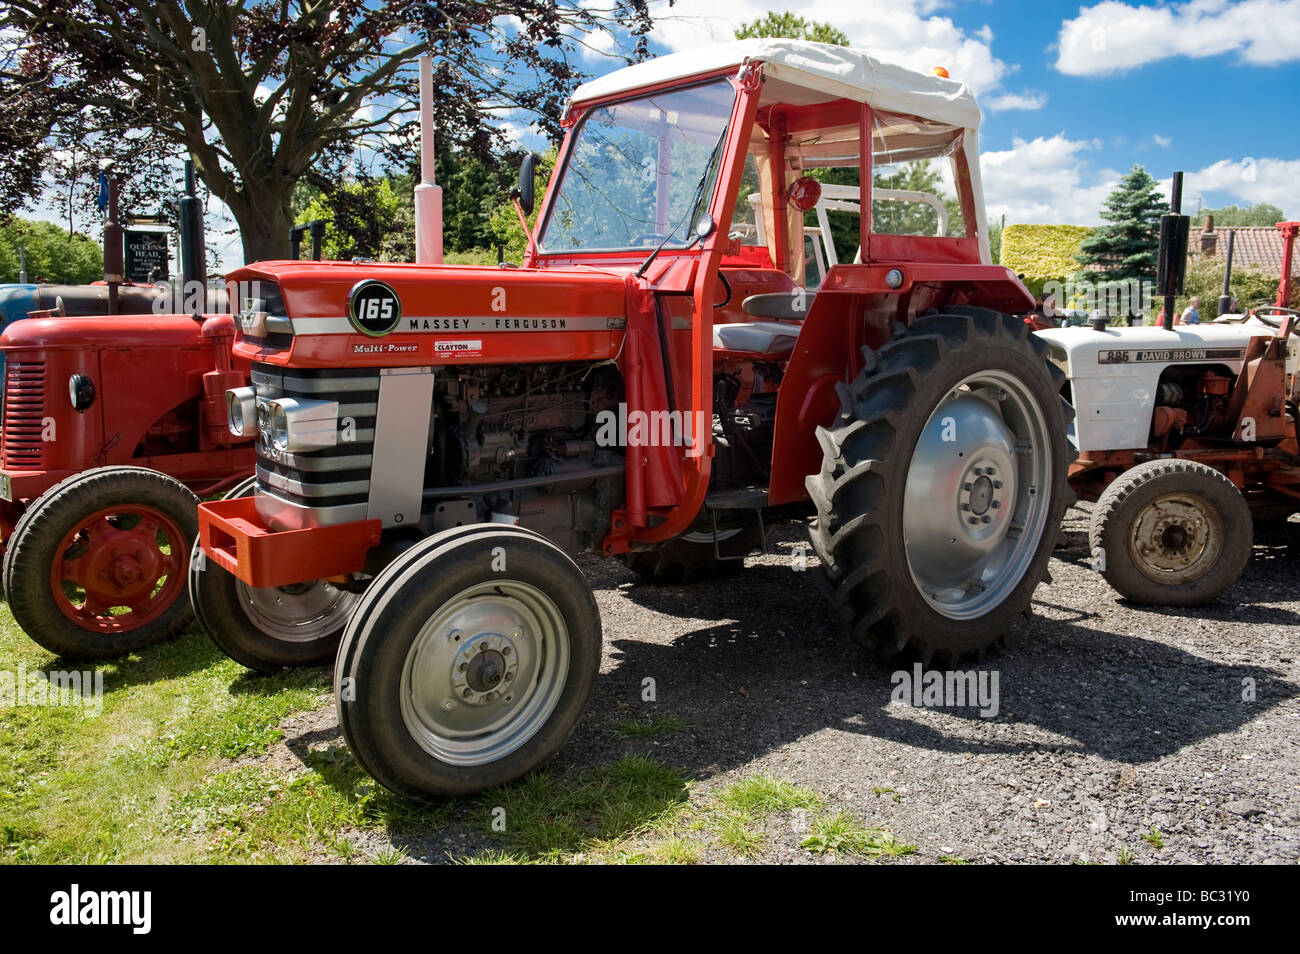 A Massey Ferguson 165 Vintage Tractor Stock Photo: 24653636 - Alamy